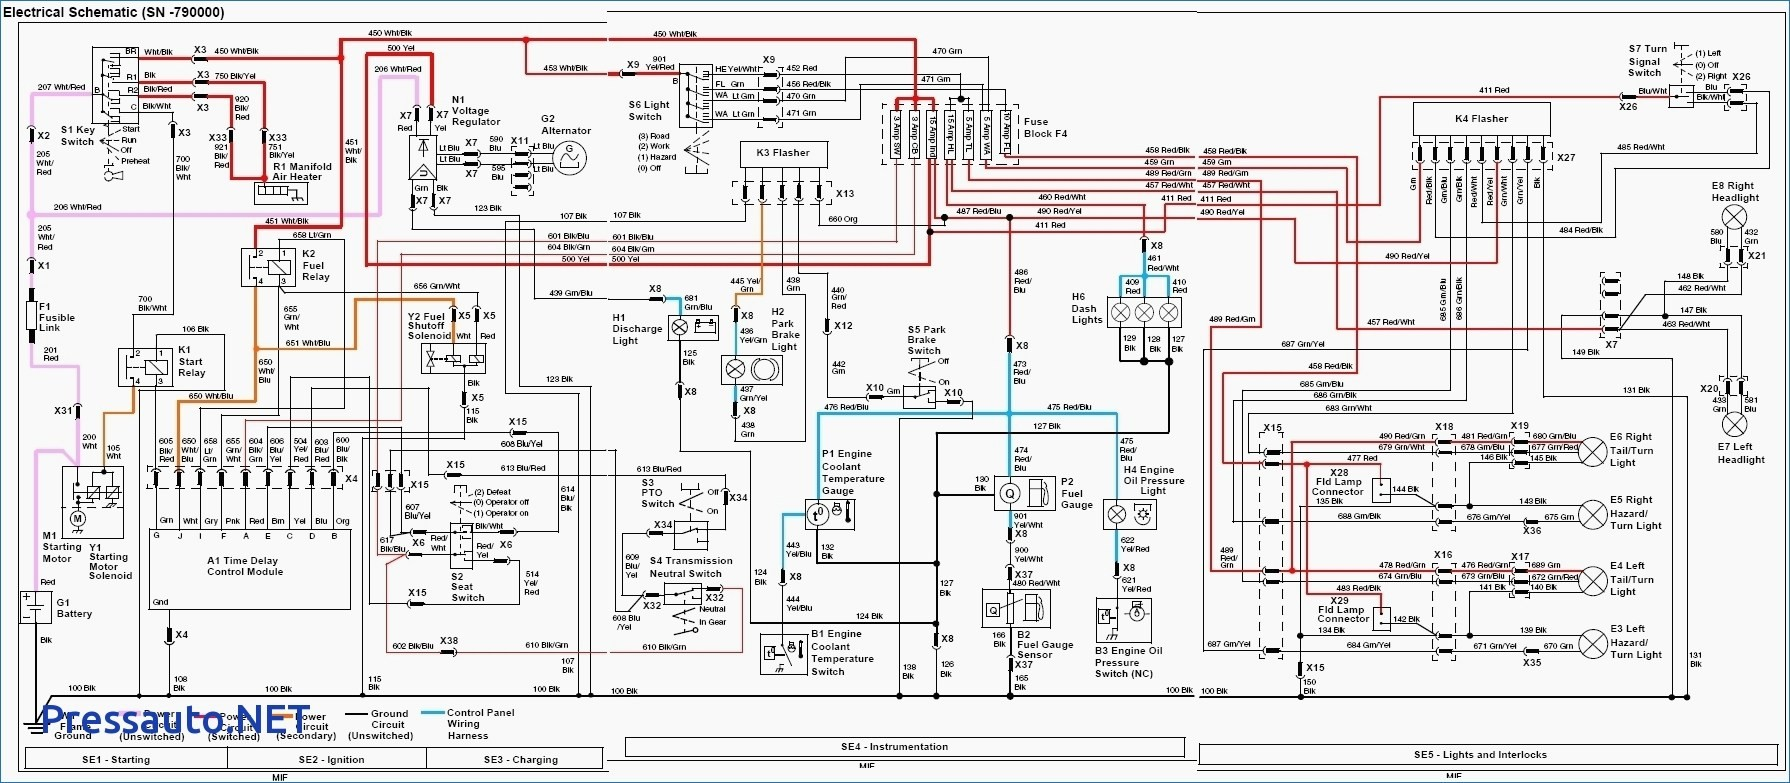 X495 Pto Wiring Diagram | Online Wiring Diagram X Pto Wiring Diagram on